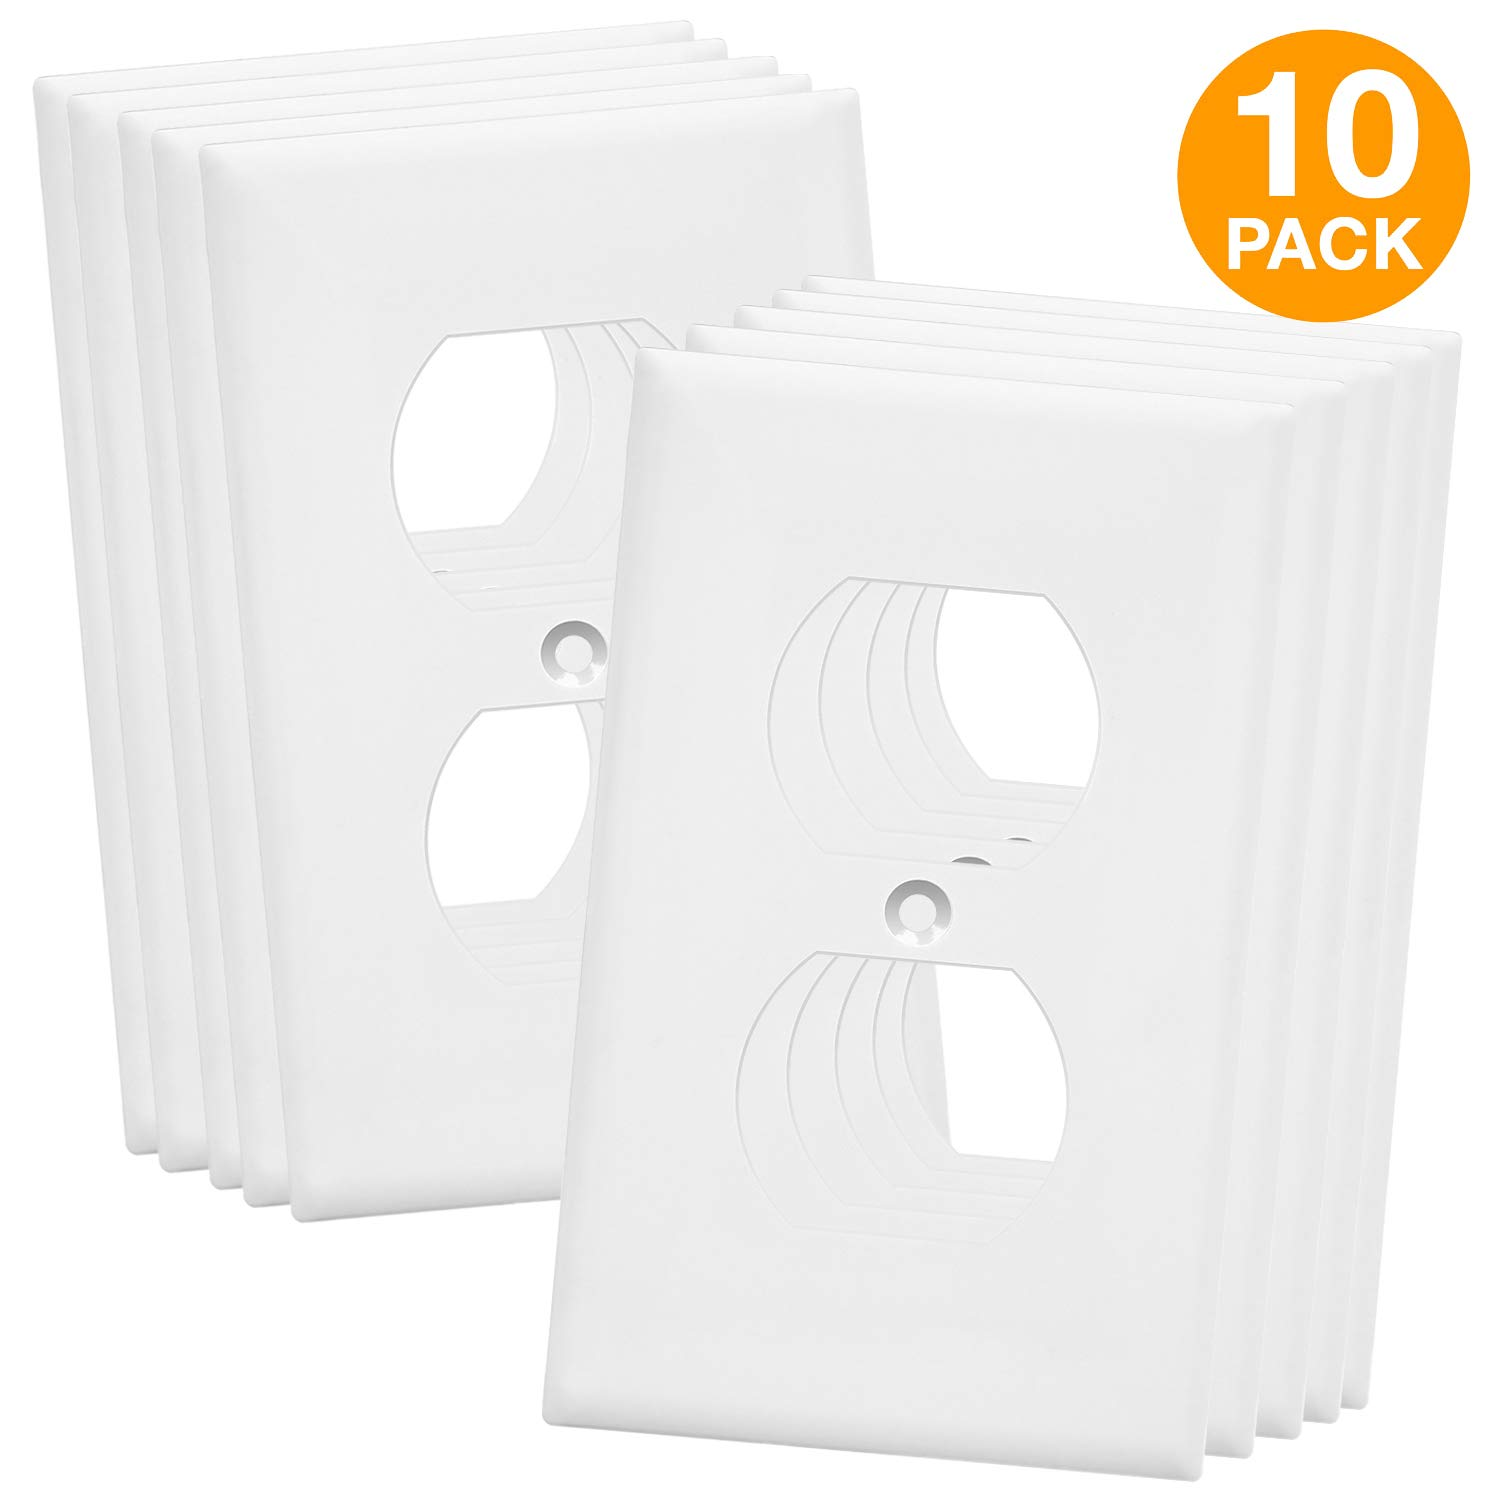 Enerlites 8821M-W-10PCS Duplex Outlet Wall Plate, 1-4 Gang, Midsize, Unbreakable Polycarbonate, White (Pack of 10) by ENERLITES